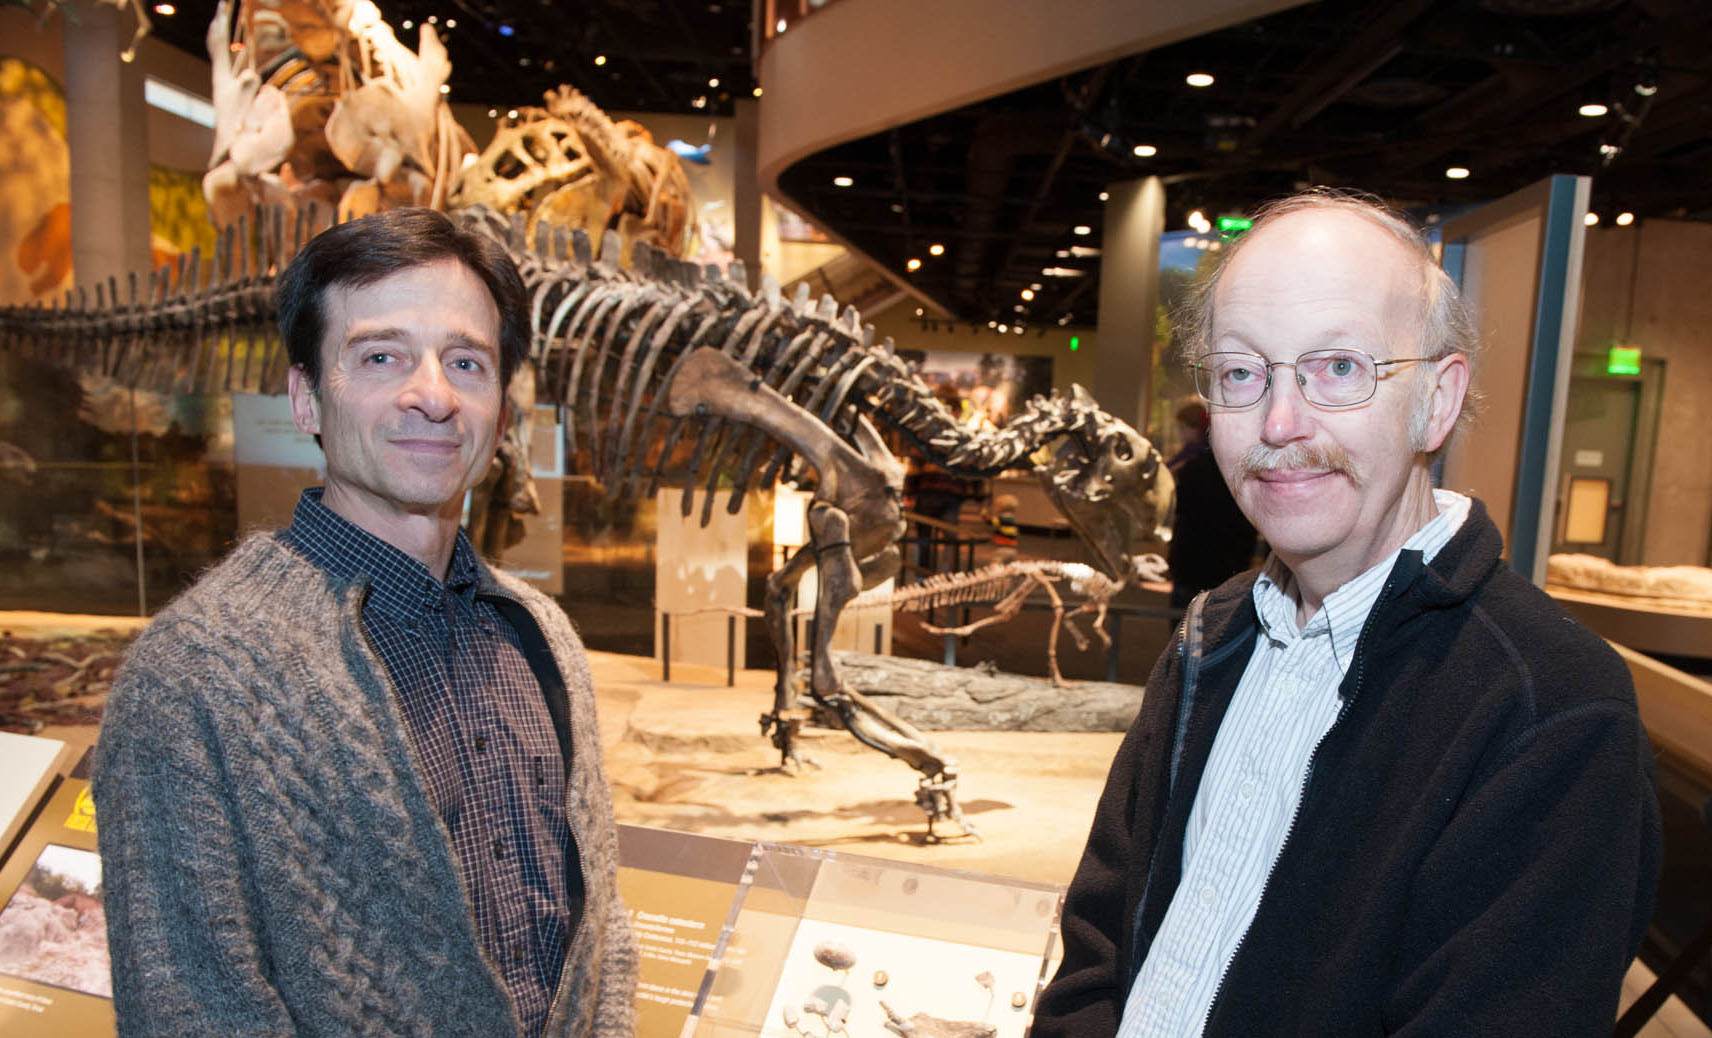 Anthony Fiorillo and Dale Winkler at the Perot Museum